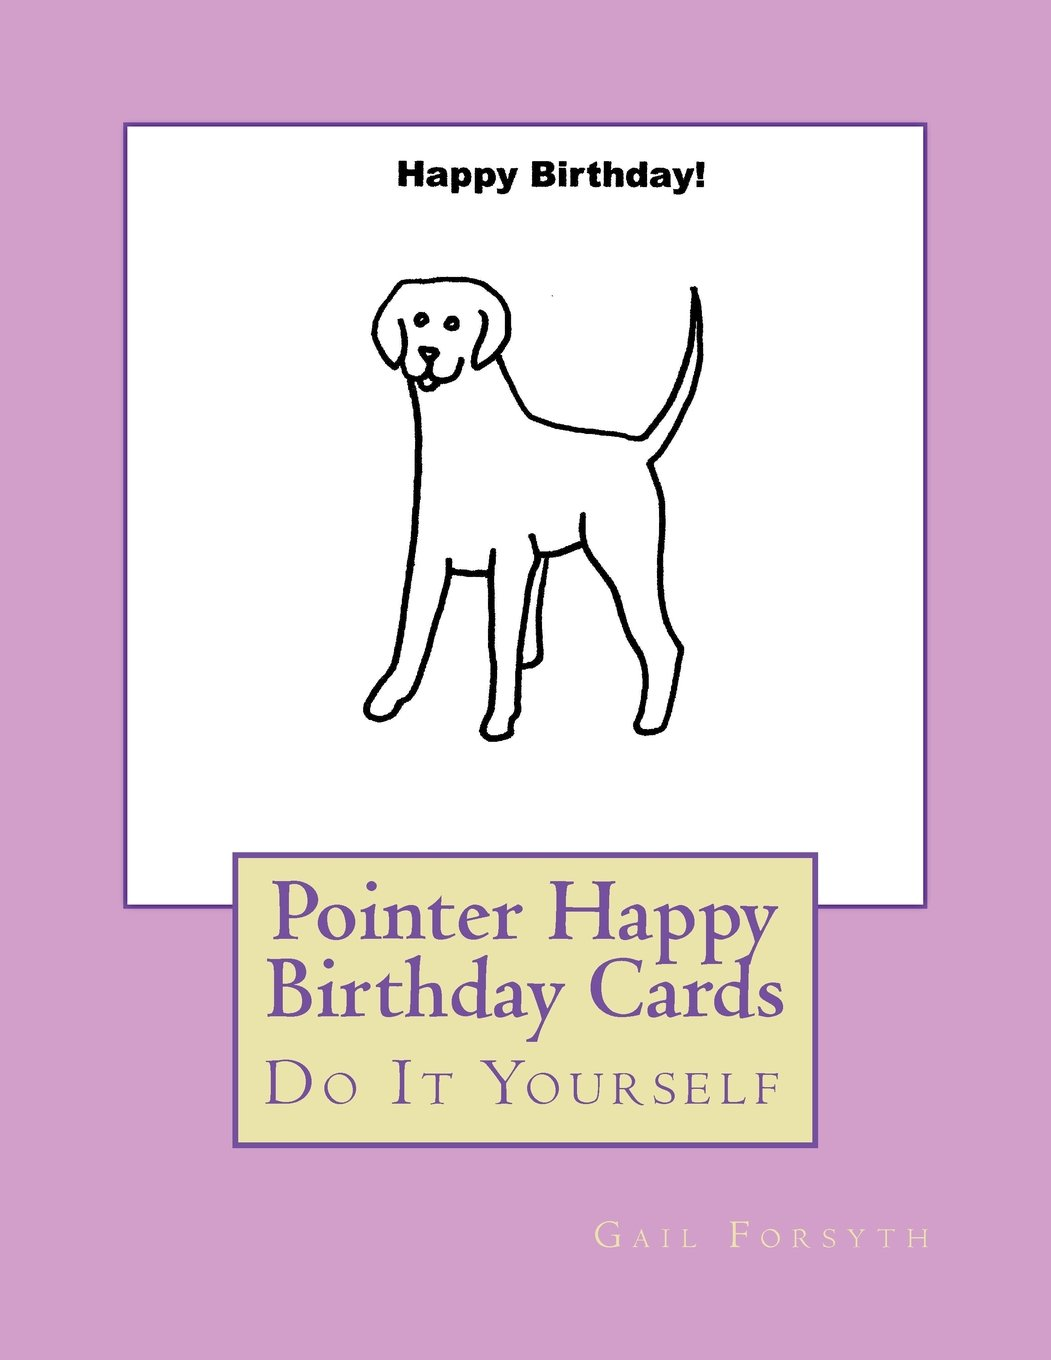 Pointer Happy Birthday Cards Do It Yourself Gail Forsyth